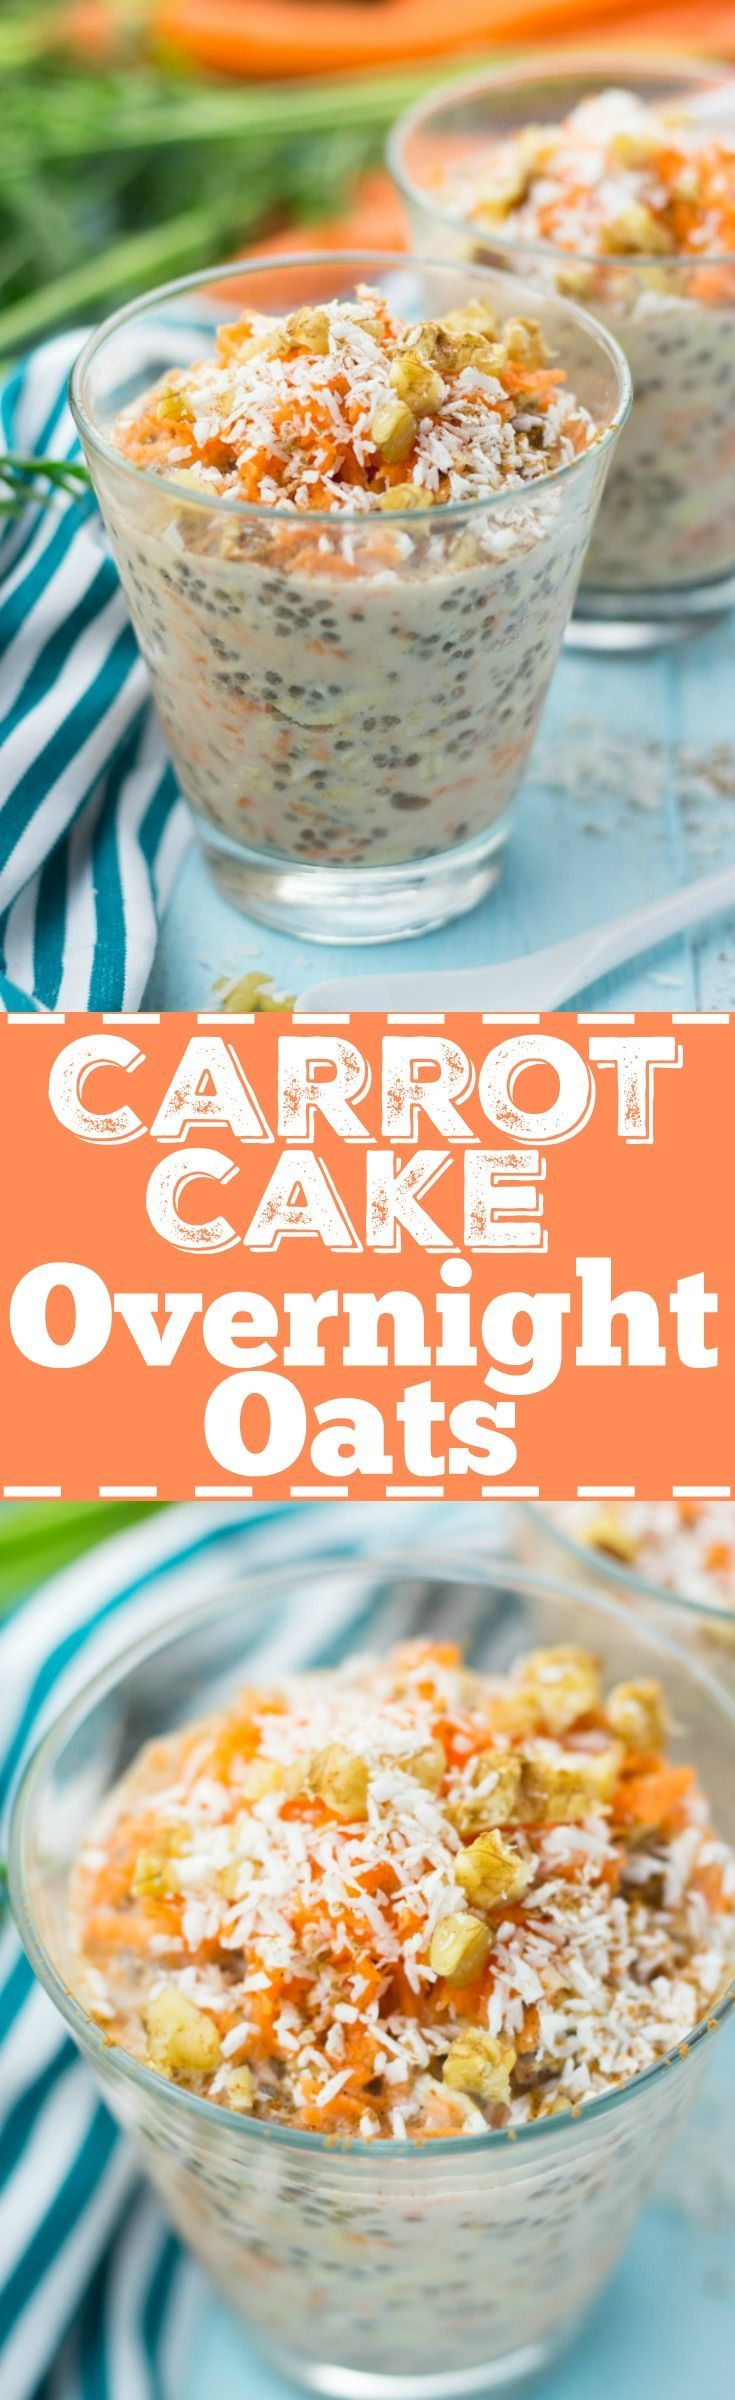 These carrot cake overnight oats with chia seeds, walnuts, and coconut flakes are so delicious and super easy to make. Plus, they're incredibly healthy!